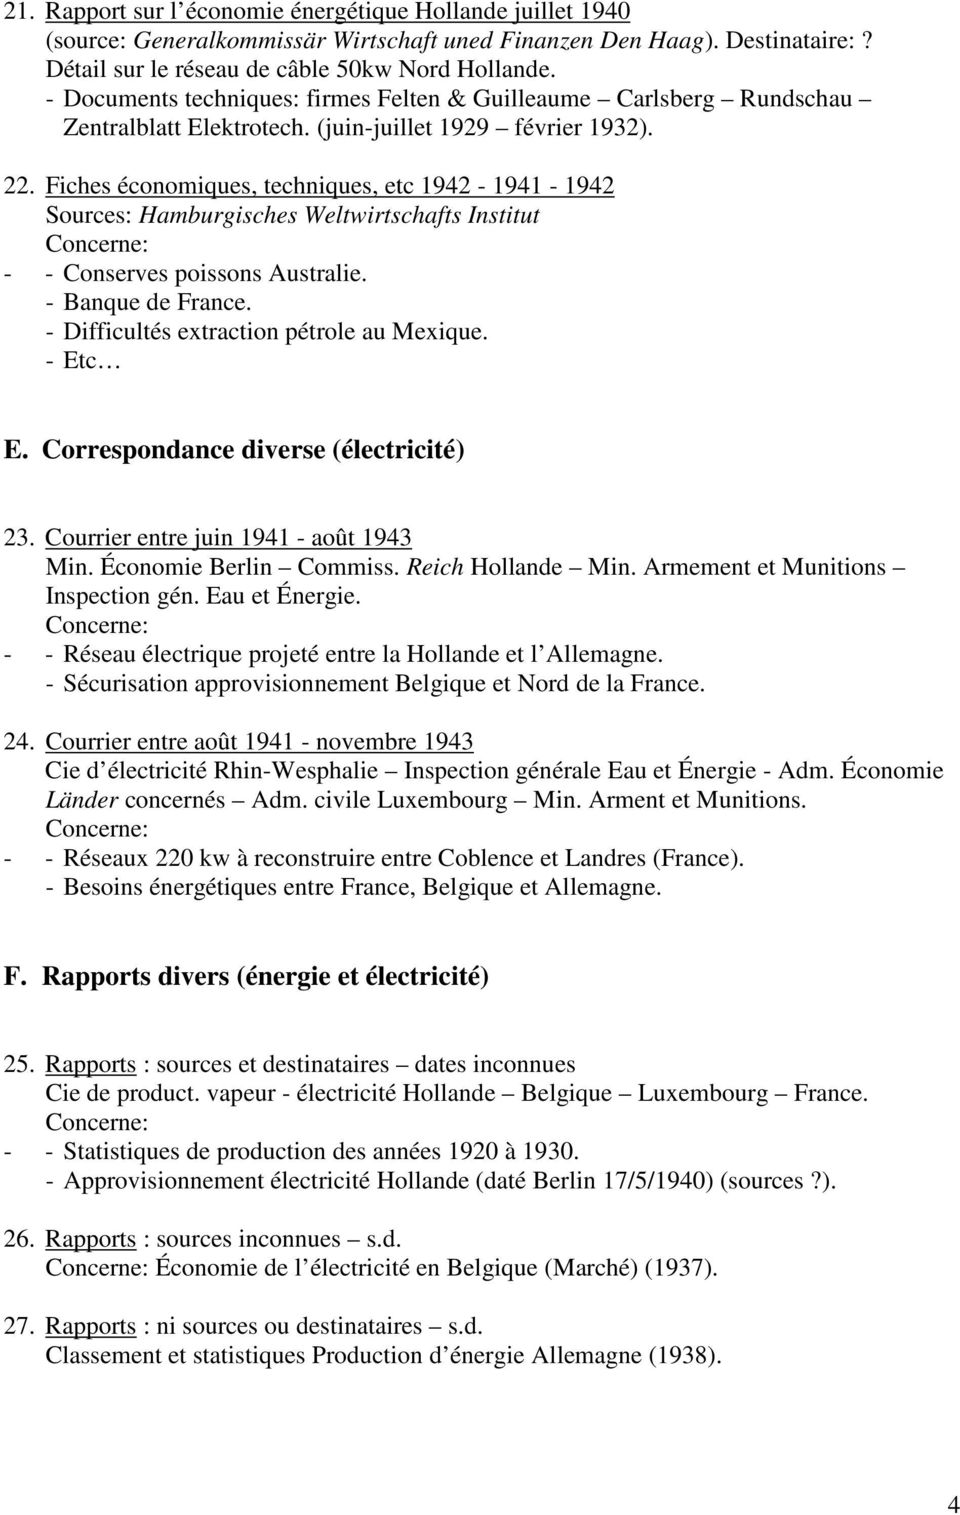 Fiches économiques, techniques, etc 1942-1941 - 1942 Sources: Hamburgisches Weltwirtschafts Institut - - Conserves poissons Australie. - Banque de France. - Difficultés extraction pétrole au Mexique.